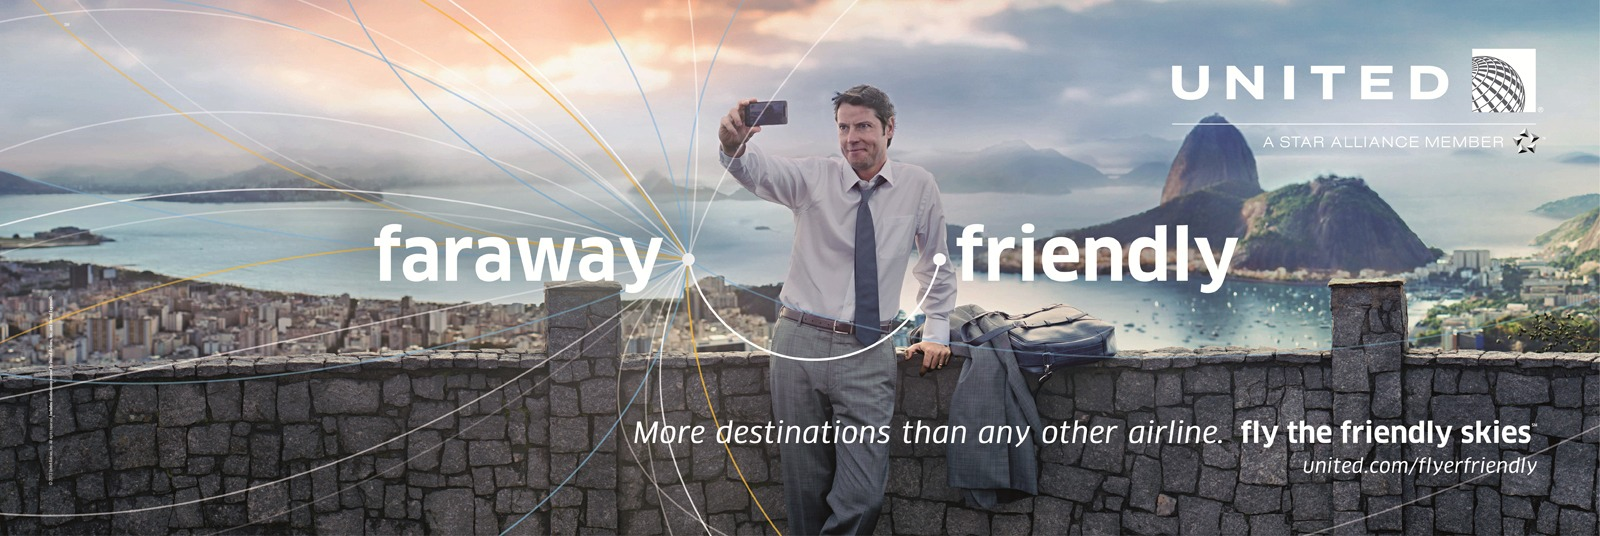 One of United's new print ads